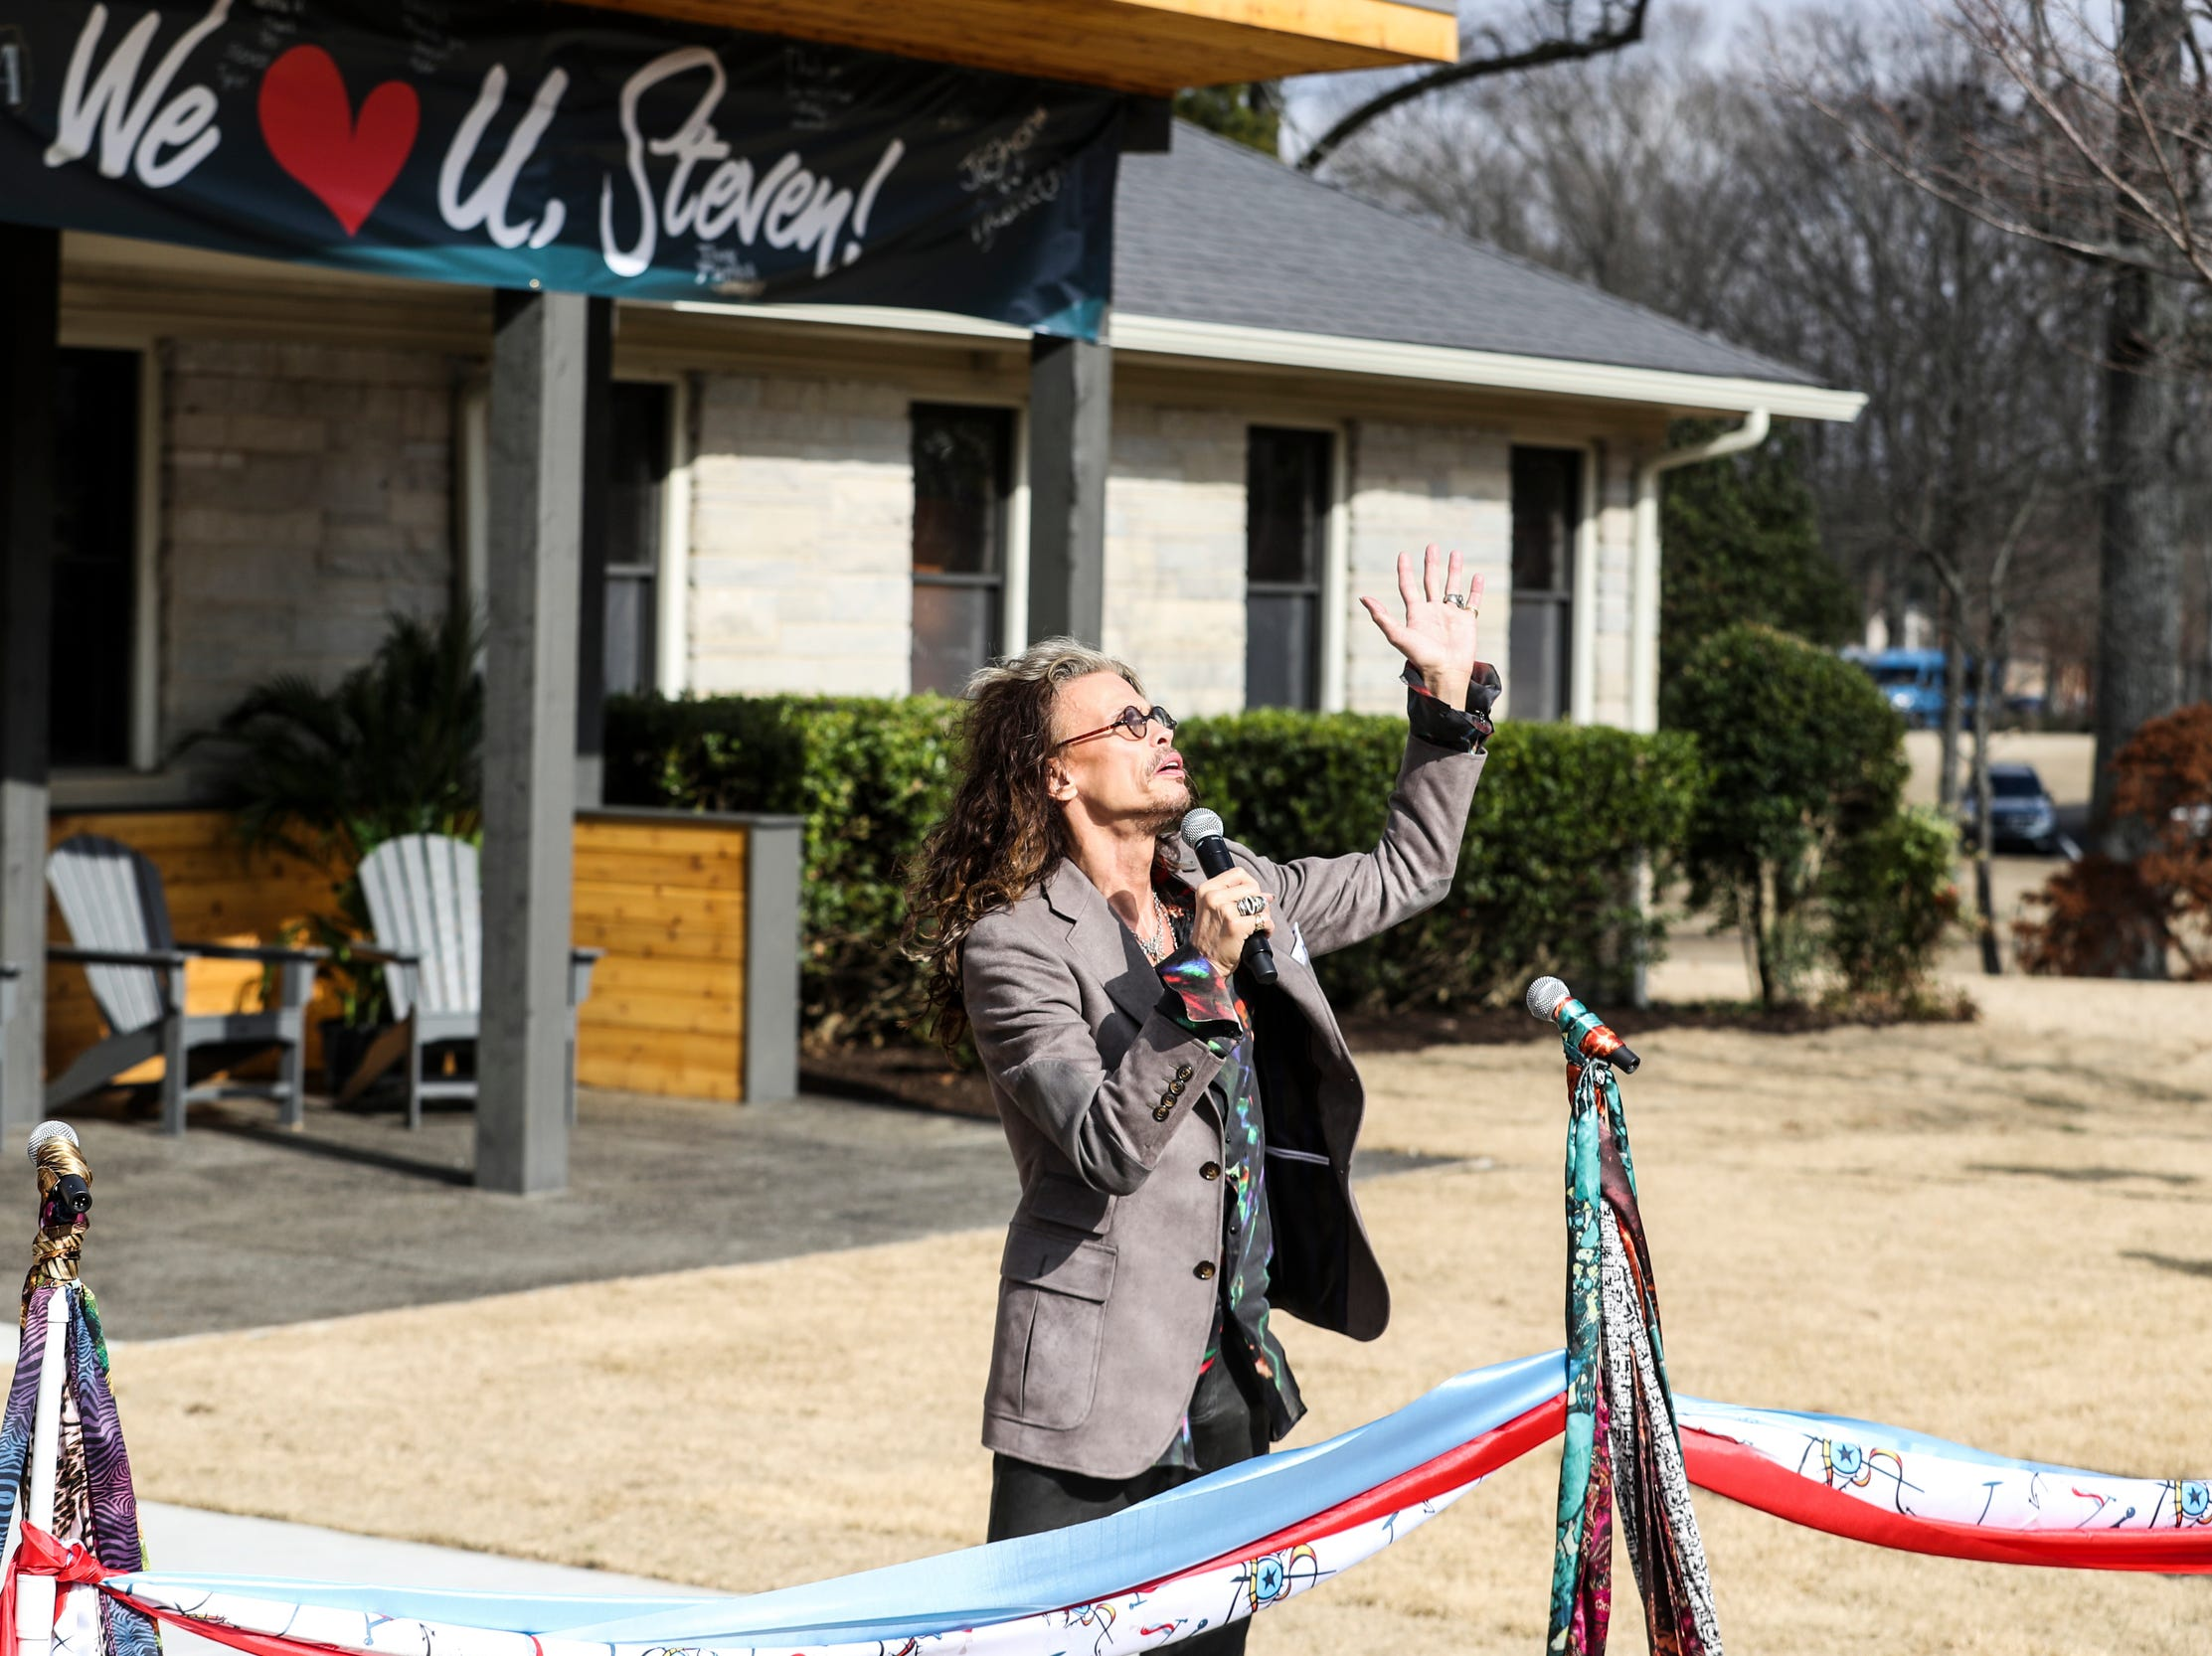 February 04 2019 - Steven Tyler speaks during a scarf-cutting celebration outside of Janie's House at Youth Villages in Bartlett. Janie's Fund paid for the renovations of the existing home for girls and Youth Villages renamed it a Janie's House.